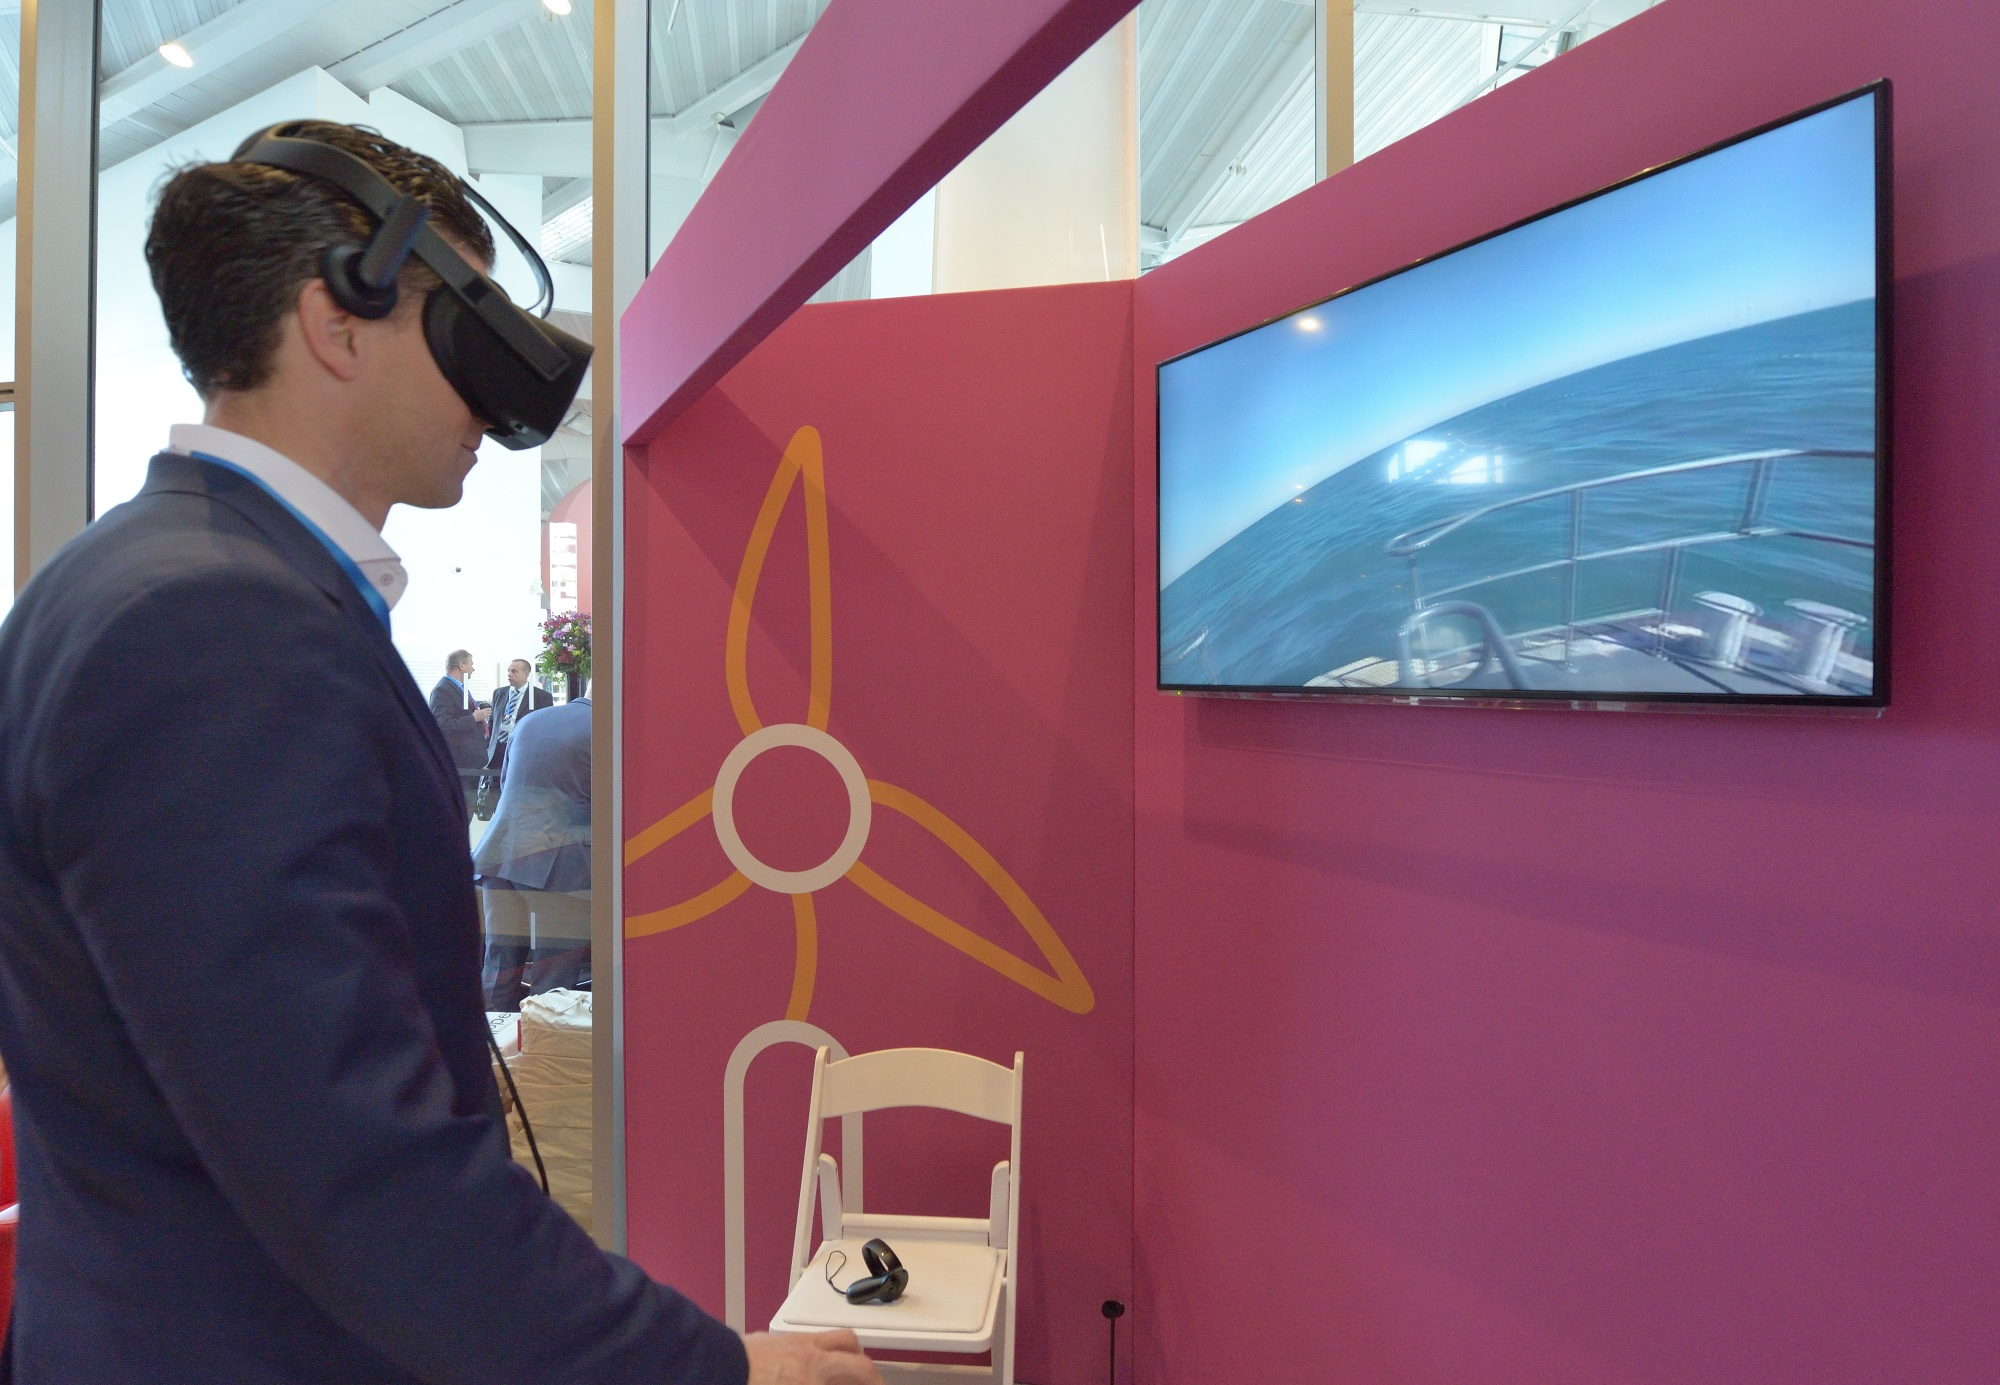 Galloper VR at the project inauguration event